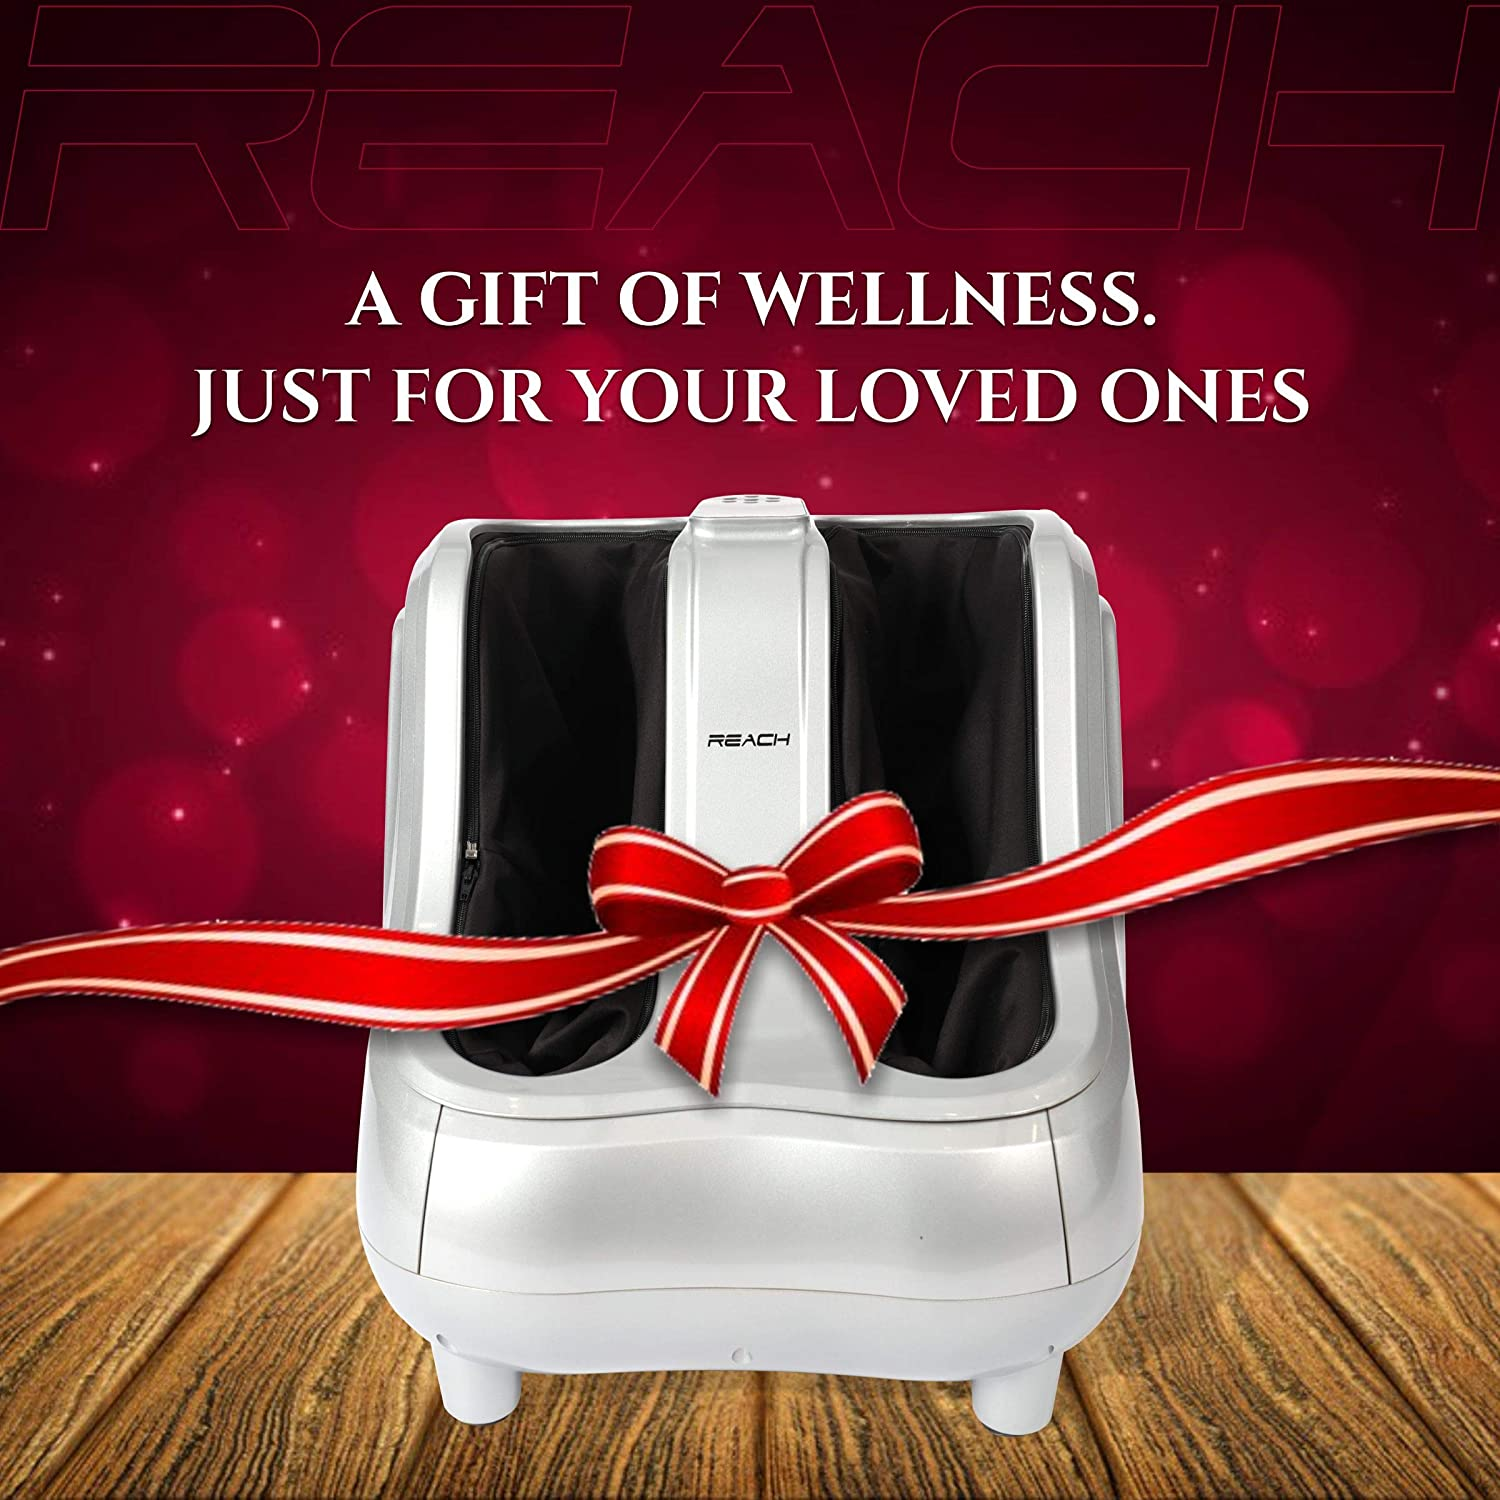 A Reach Bliss Leg Massager presented as a gift with a red ribbon tied across it.